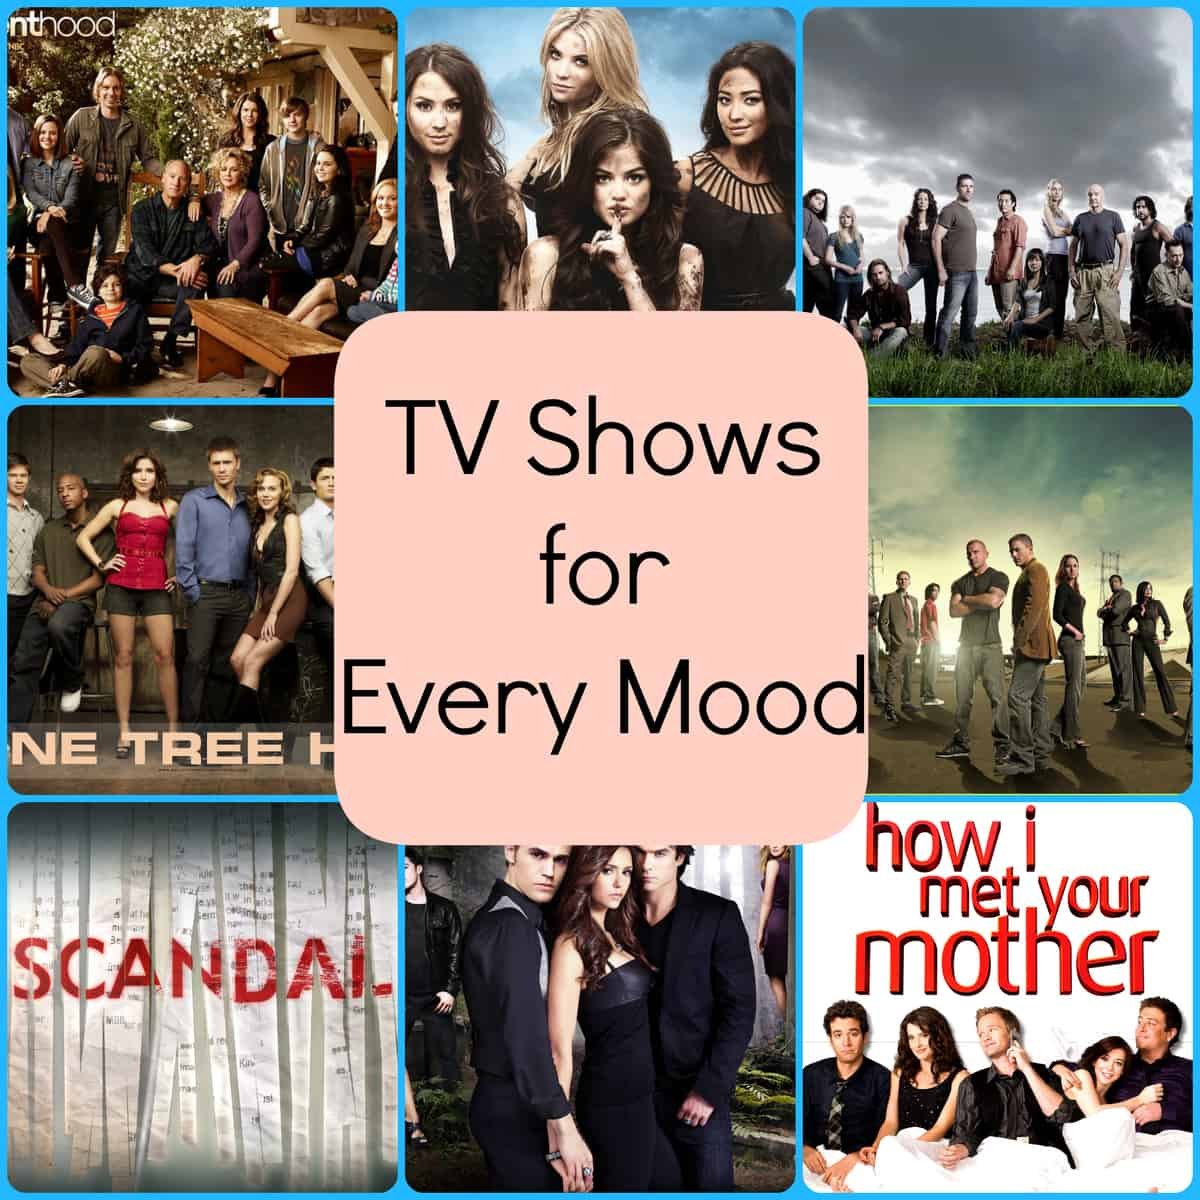 http://lovepastatoolbelt.com/wp-content/uploads/9-TV-Shows-for-Every-Mood